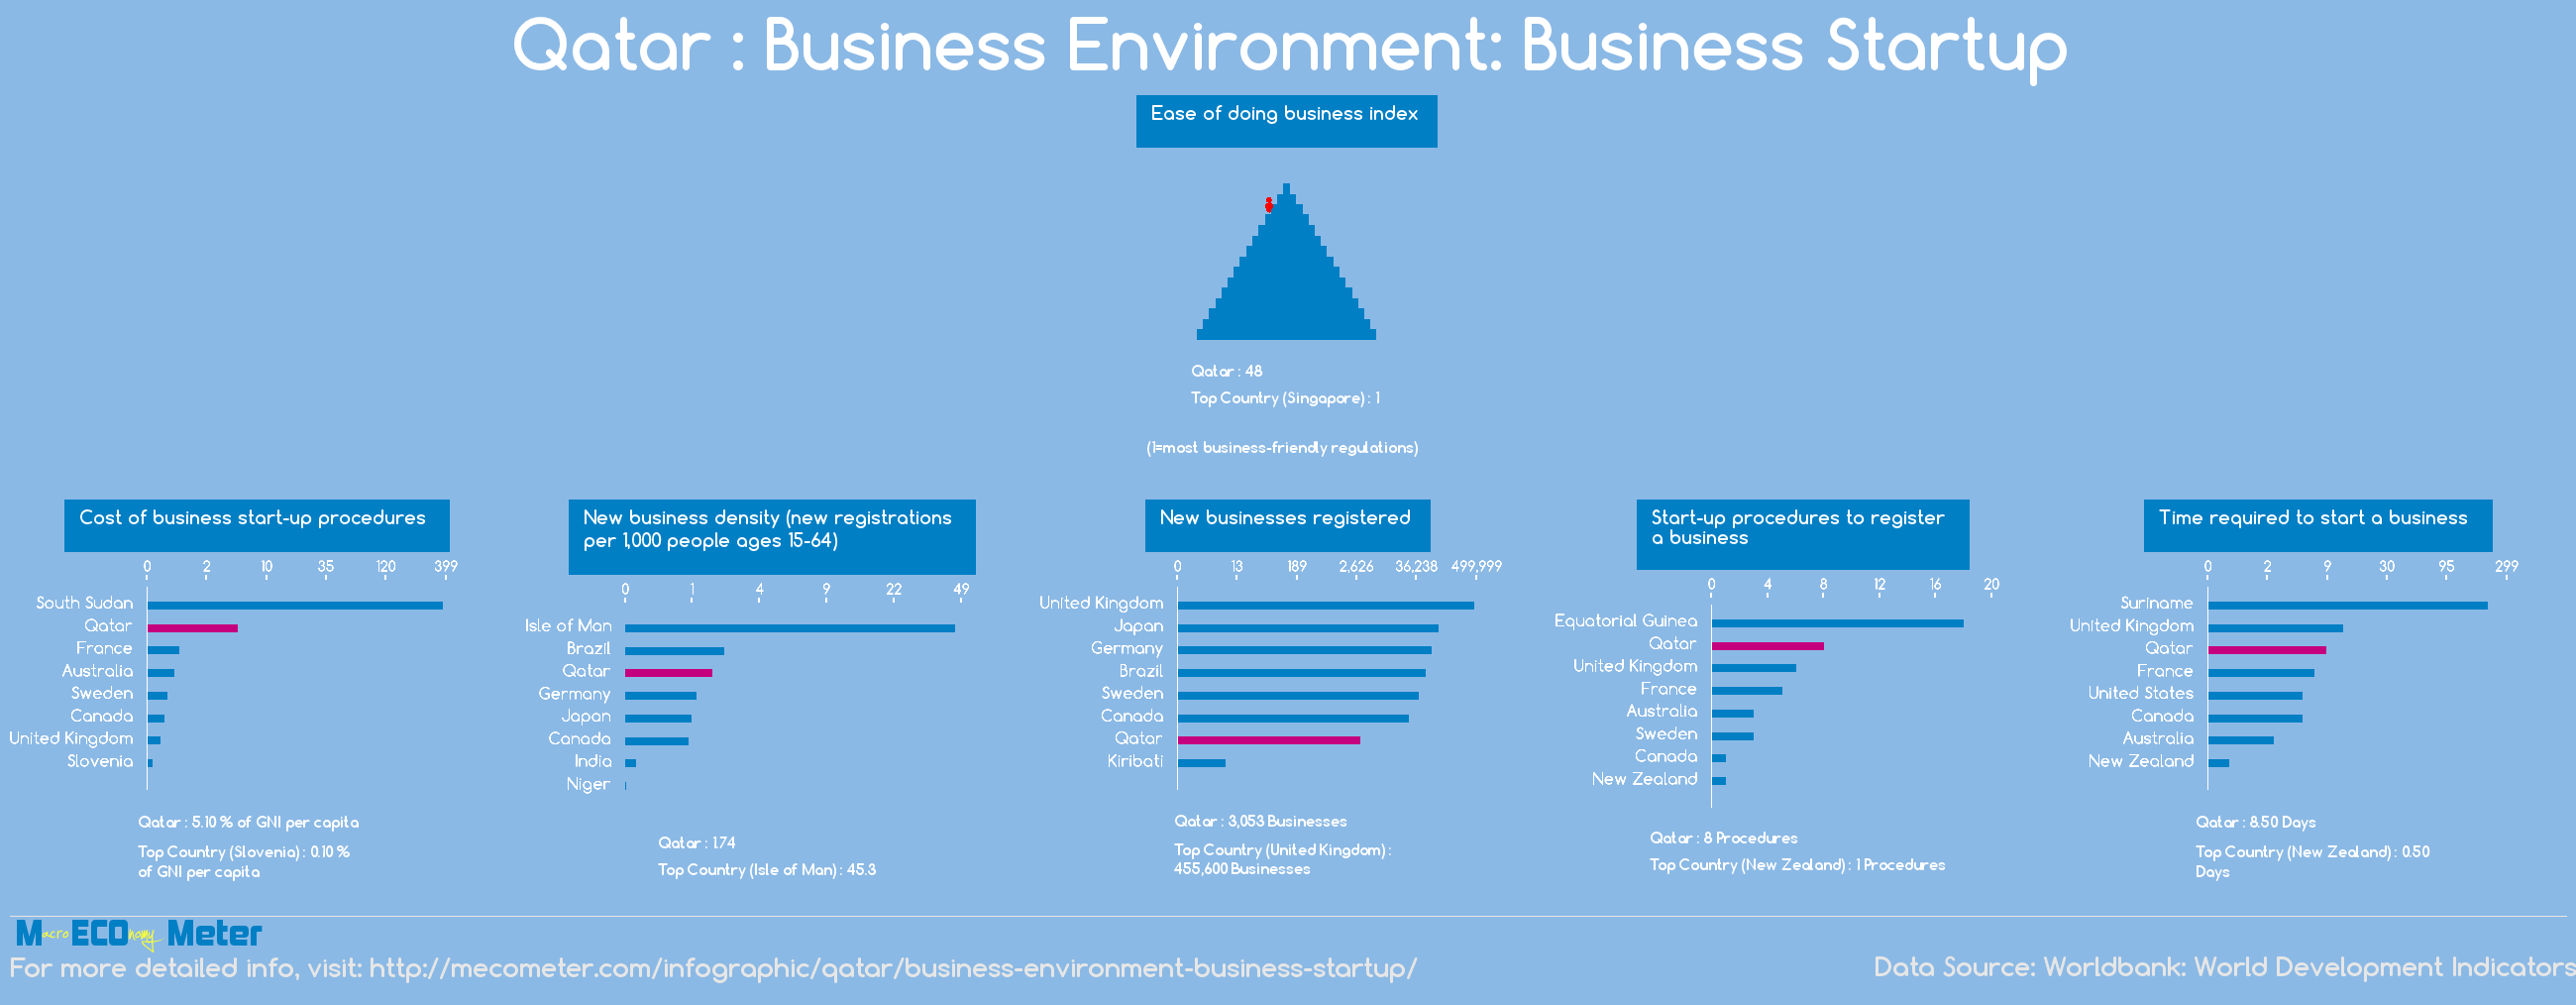 Qatar : Business Environment: Business Startup